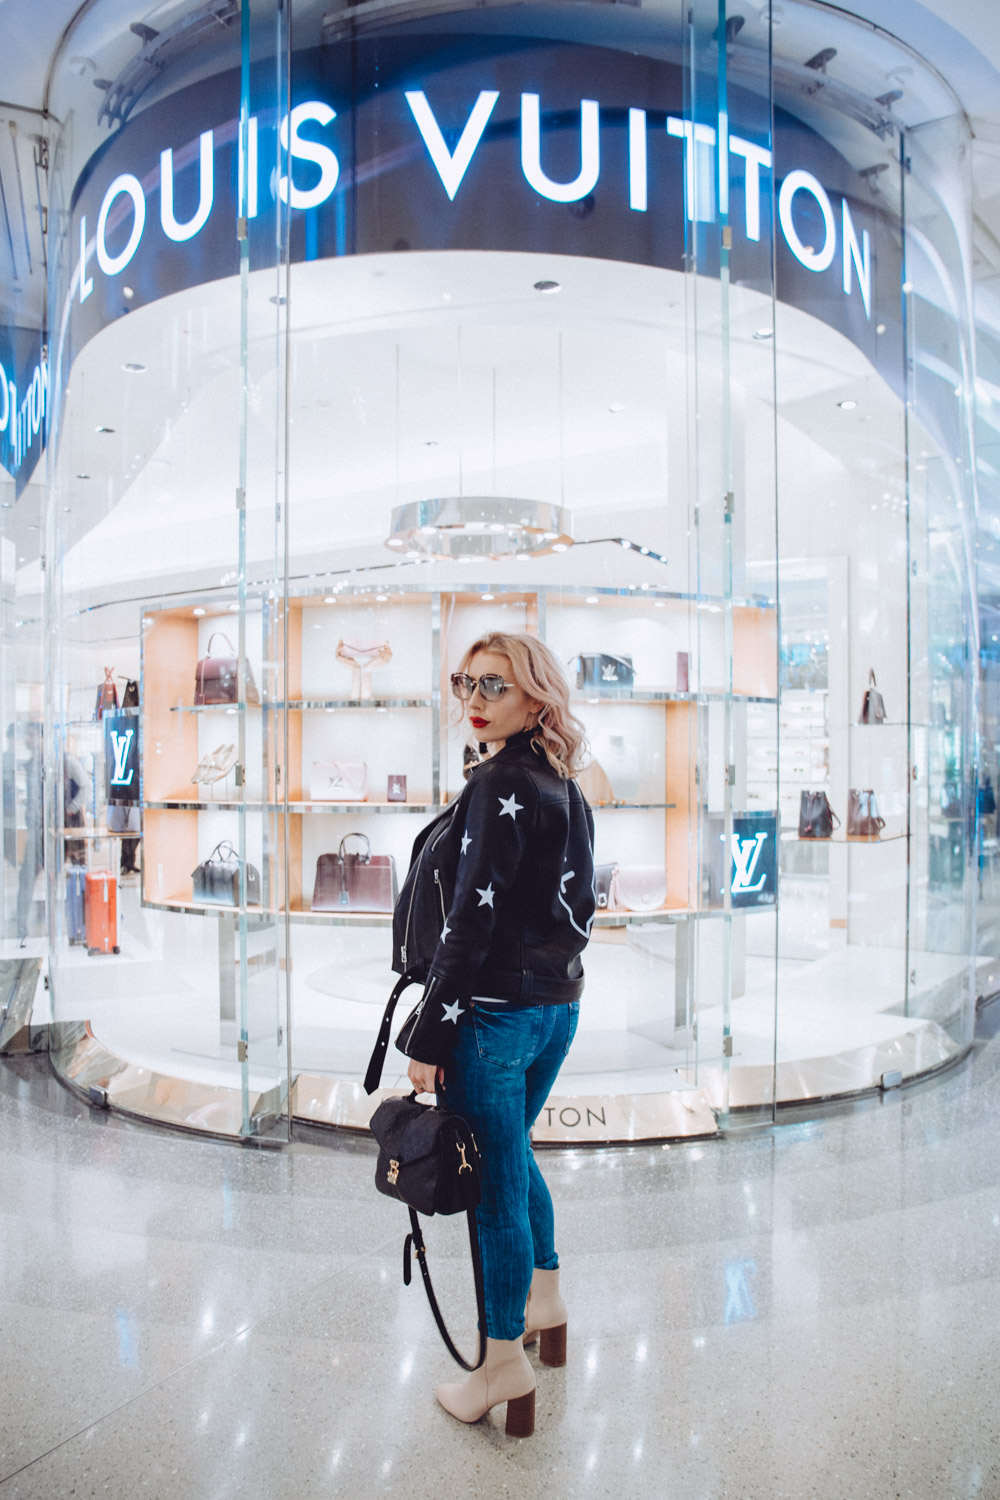 louis vuitton at Westfield Shepherds bush, fashion blogger, Topshop jacket